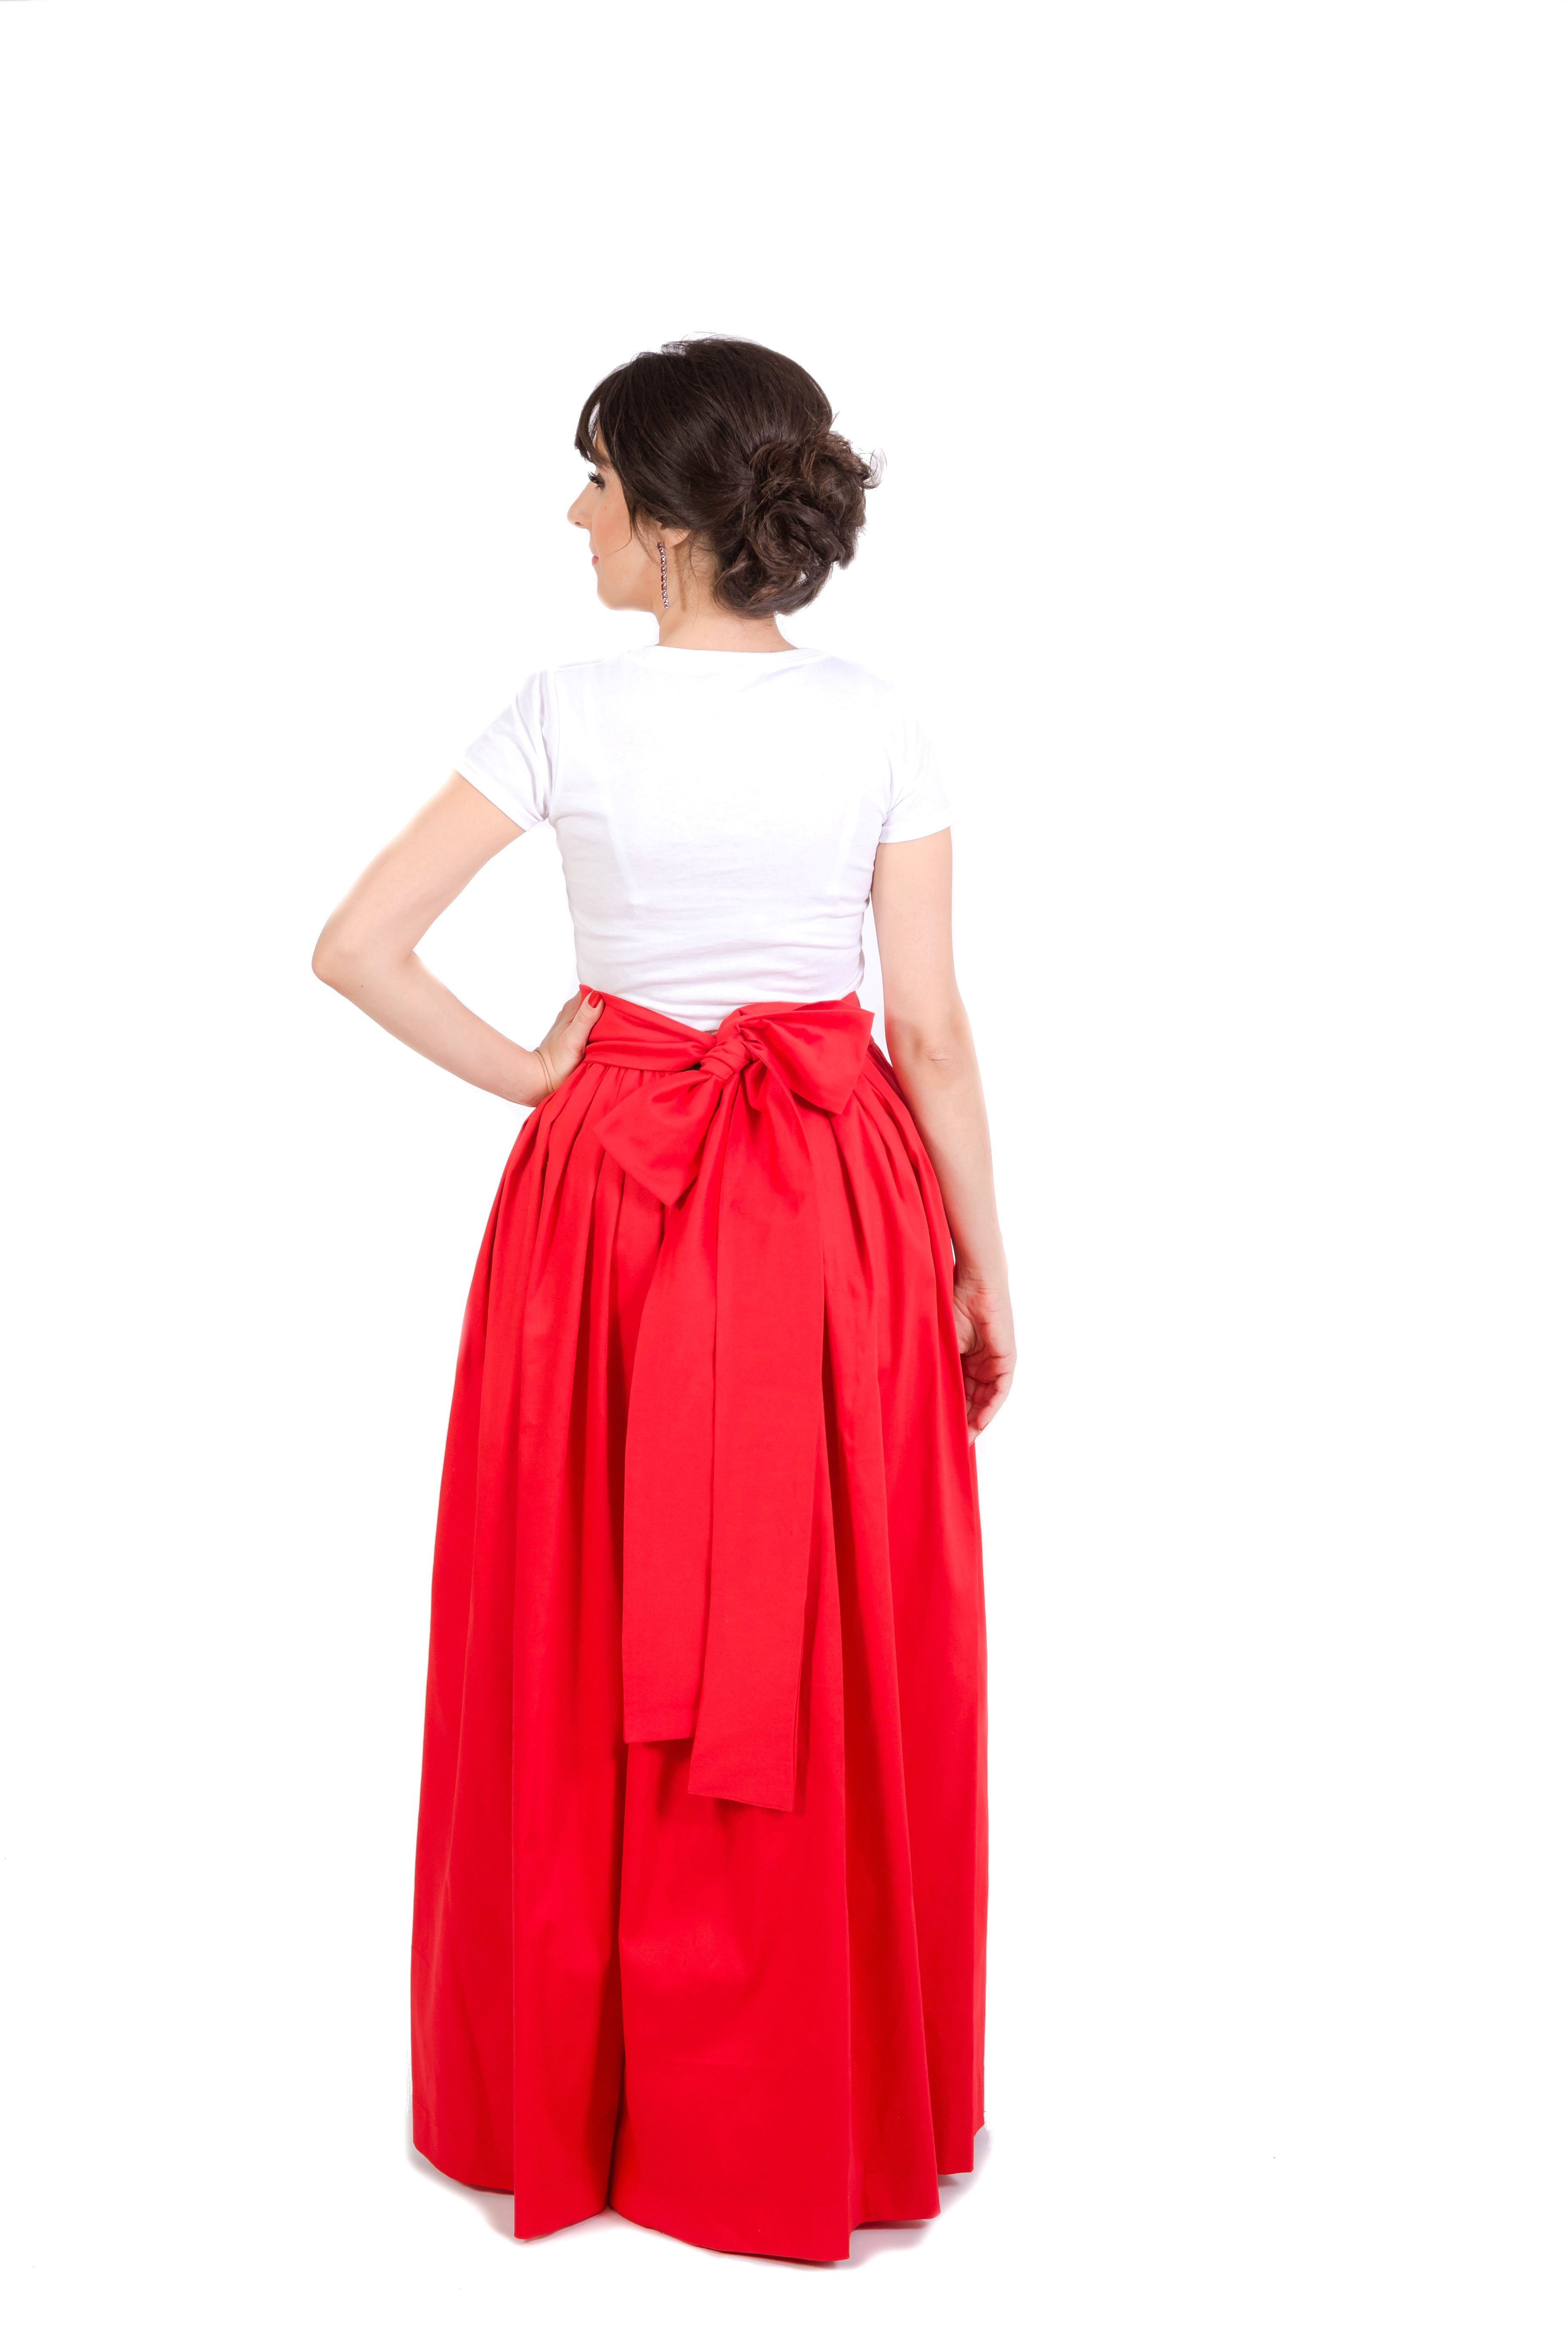 The energy of a long skirt. This is true, in my experience, women who love to walk in skirts, give birth easier 17